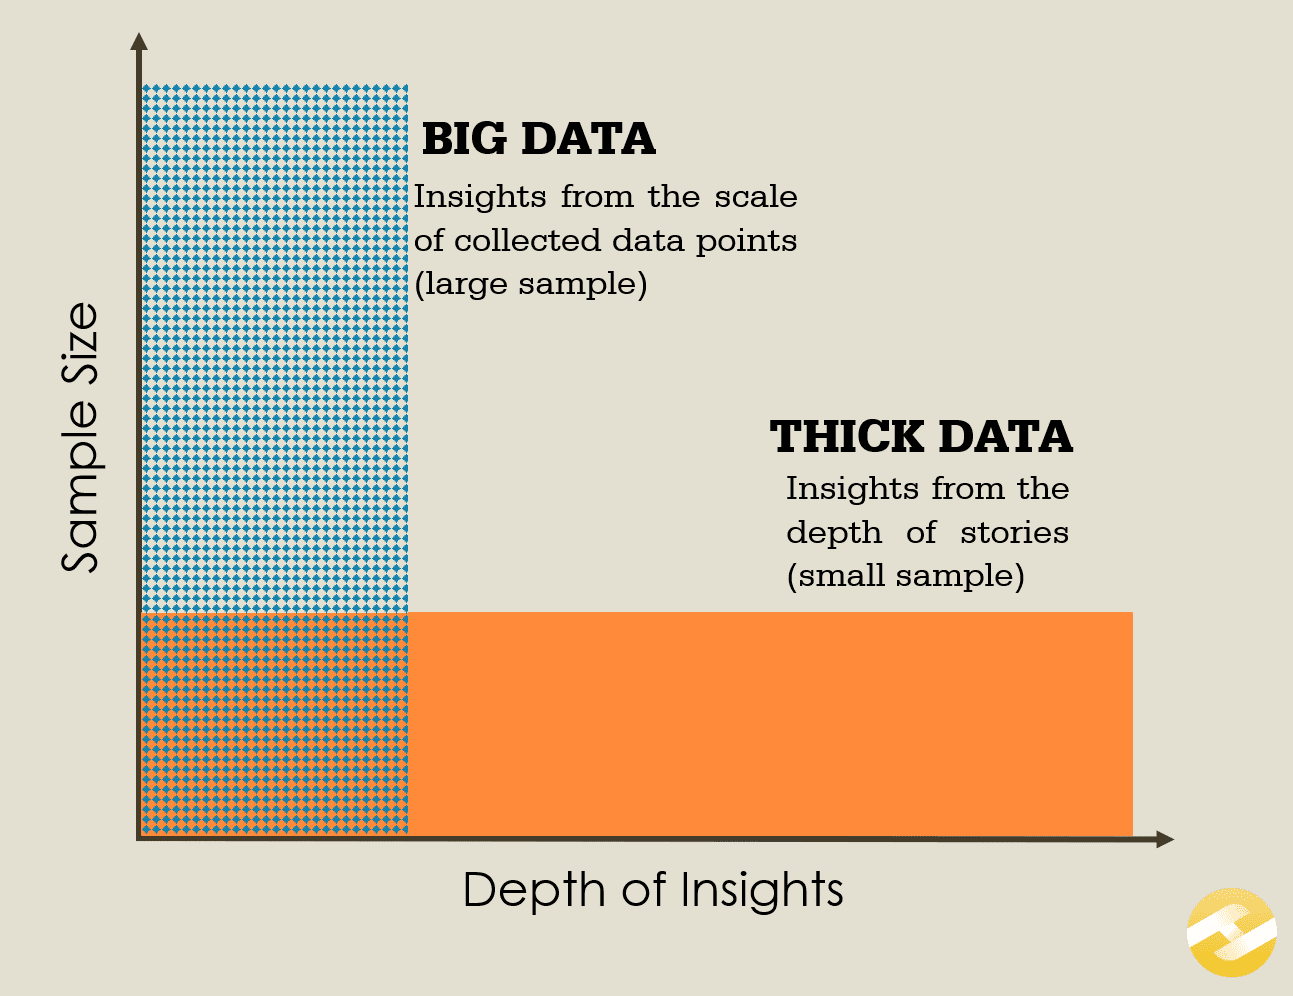 What is thick data : big data vs thick data